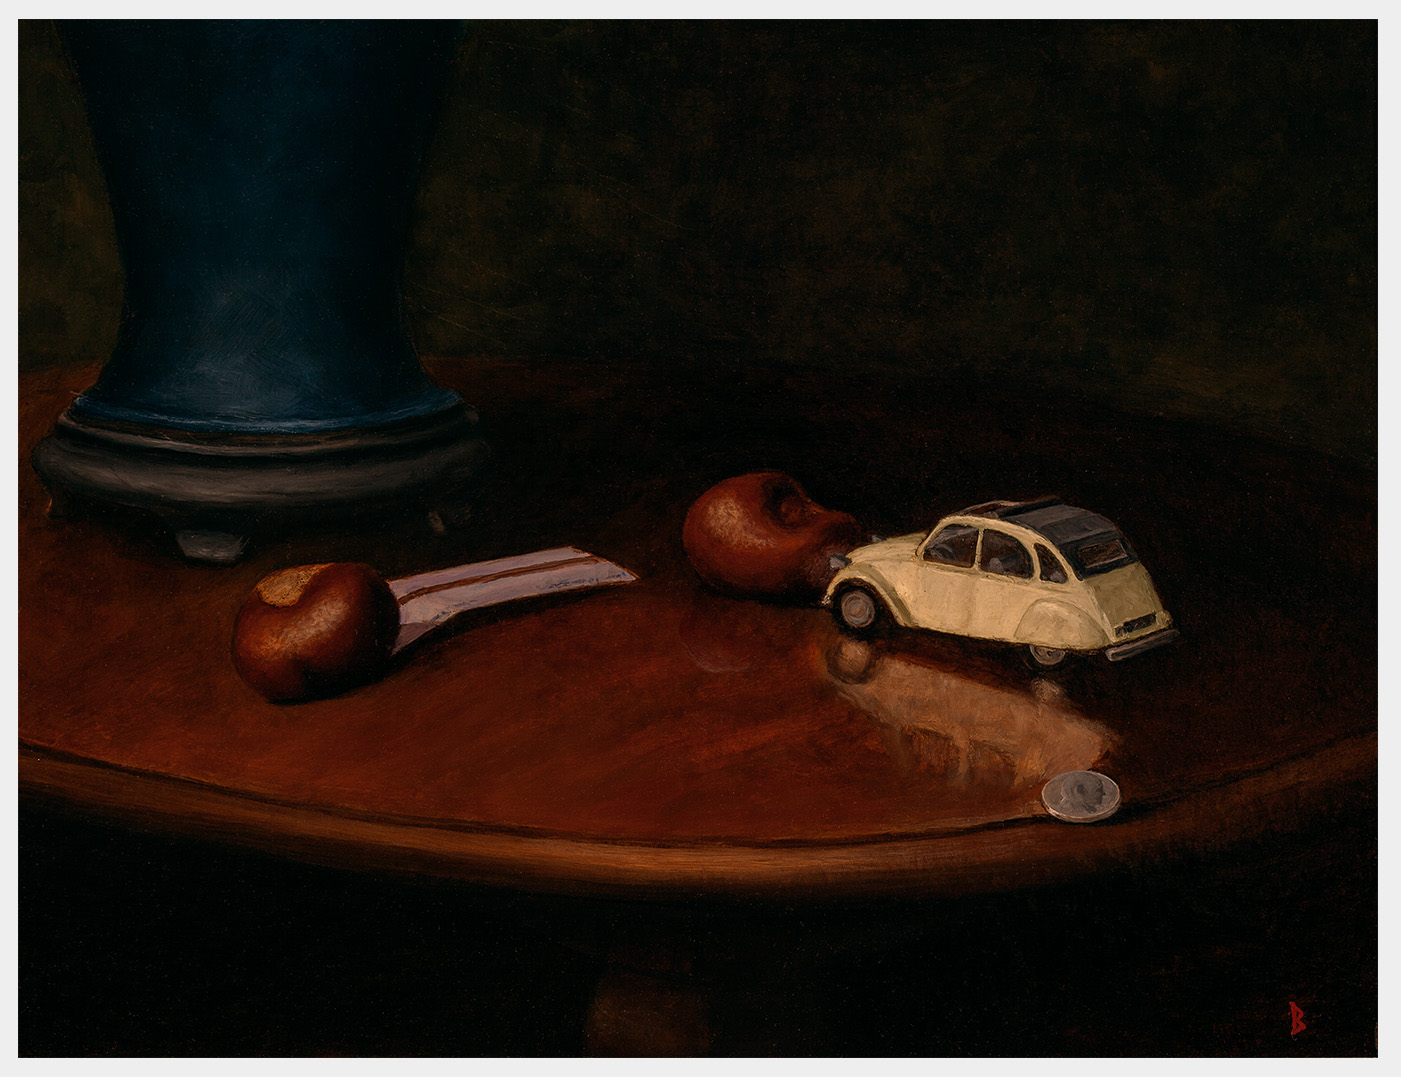 Realistic oil painting of the contents of a boy's pocket including a bus ticket two chestnuts and a white toy car and a coin on a gleaming wooden table top with the base of a blue lamp just visible in the background